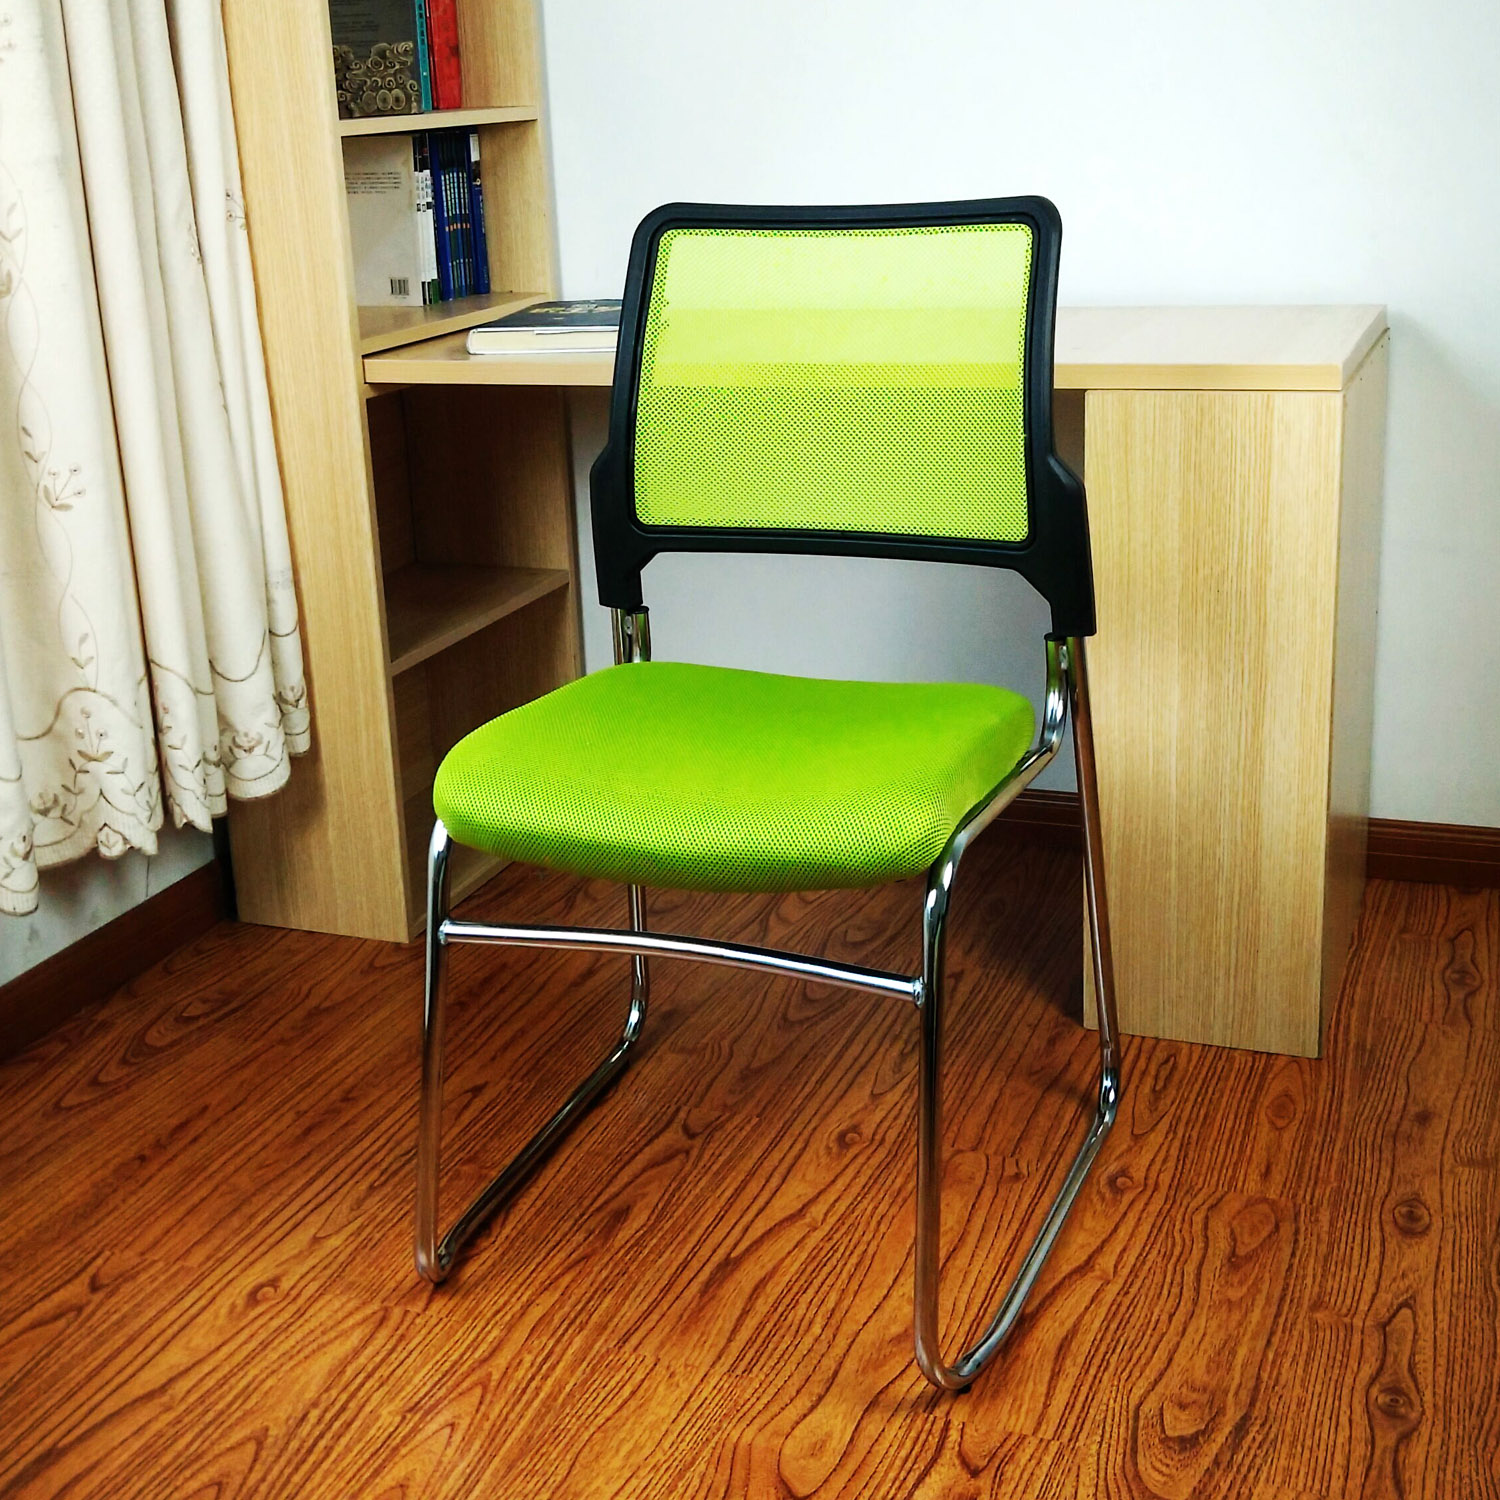 Desk Chair Legs Covers For Plastic School Chairs Simple Steel Mesh Cloth The Conference Staff